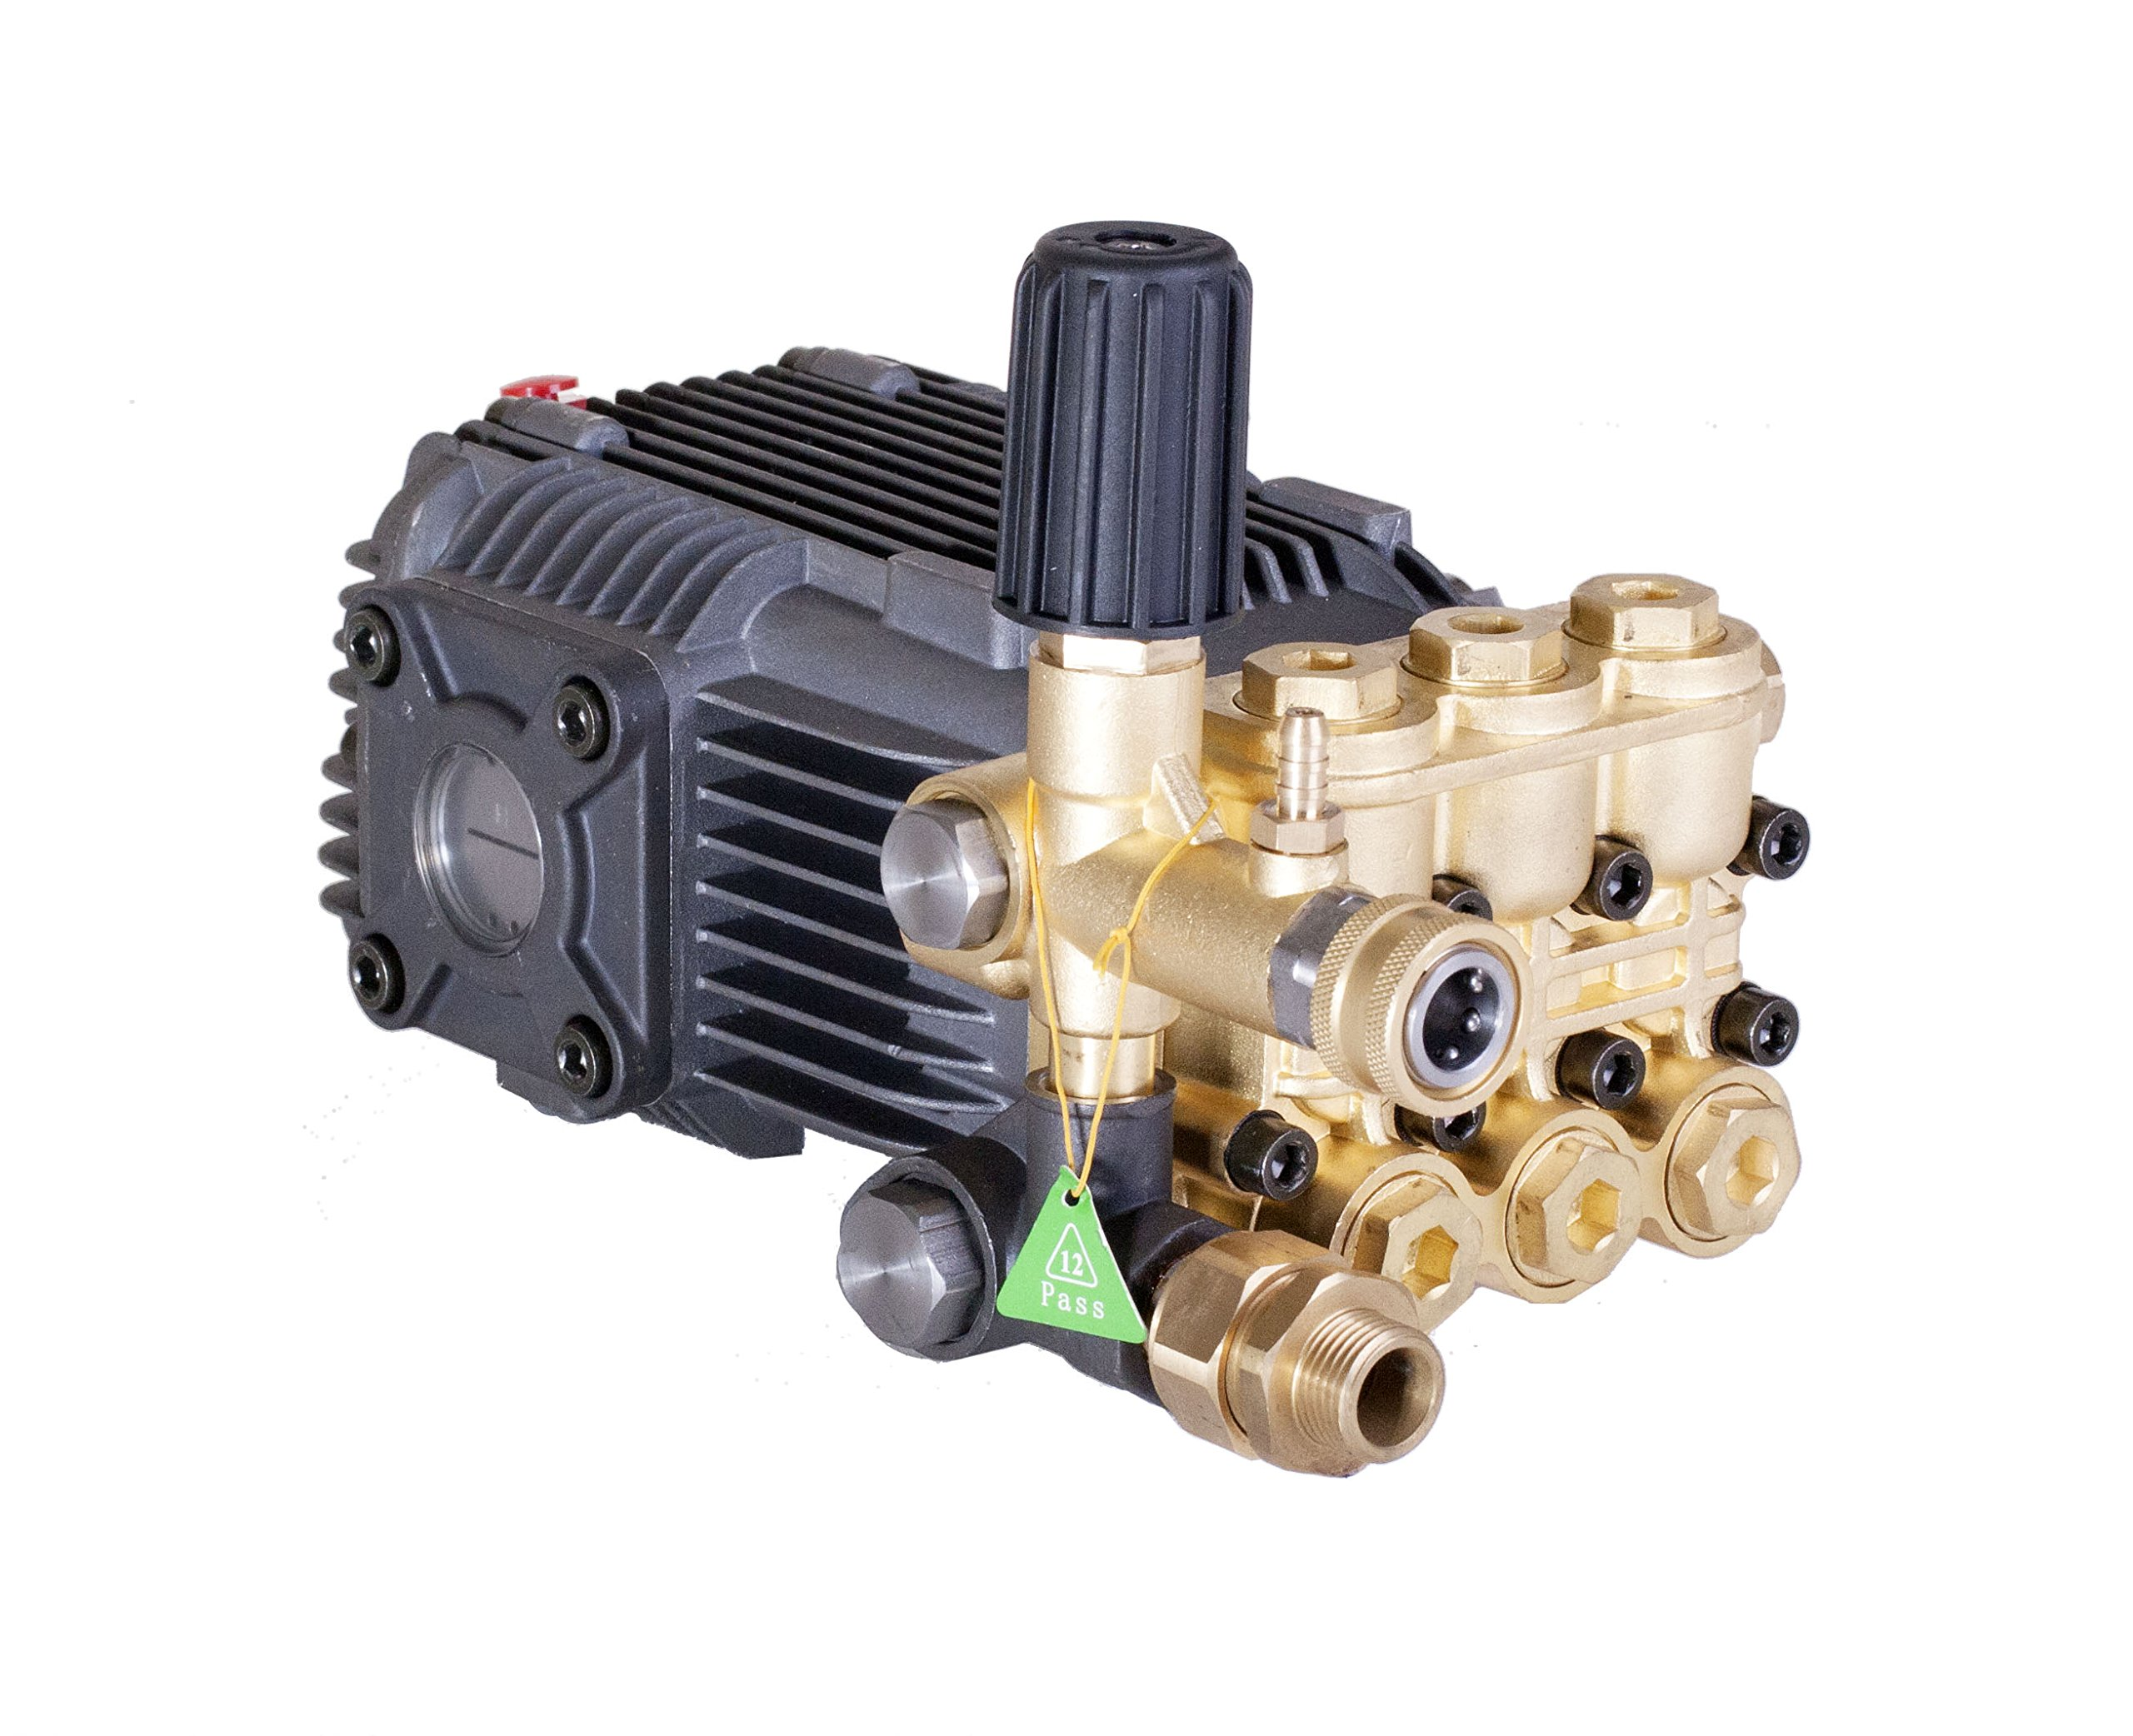 Pressure Power Washer Replacement Pump Solid Shaft 24 mm Belt Drive 3600 PSI by Canpump (Image #2)